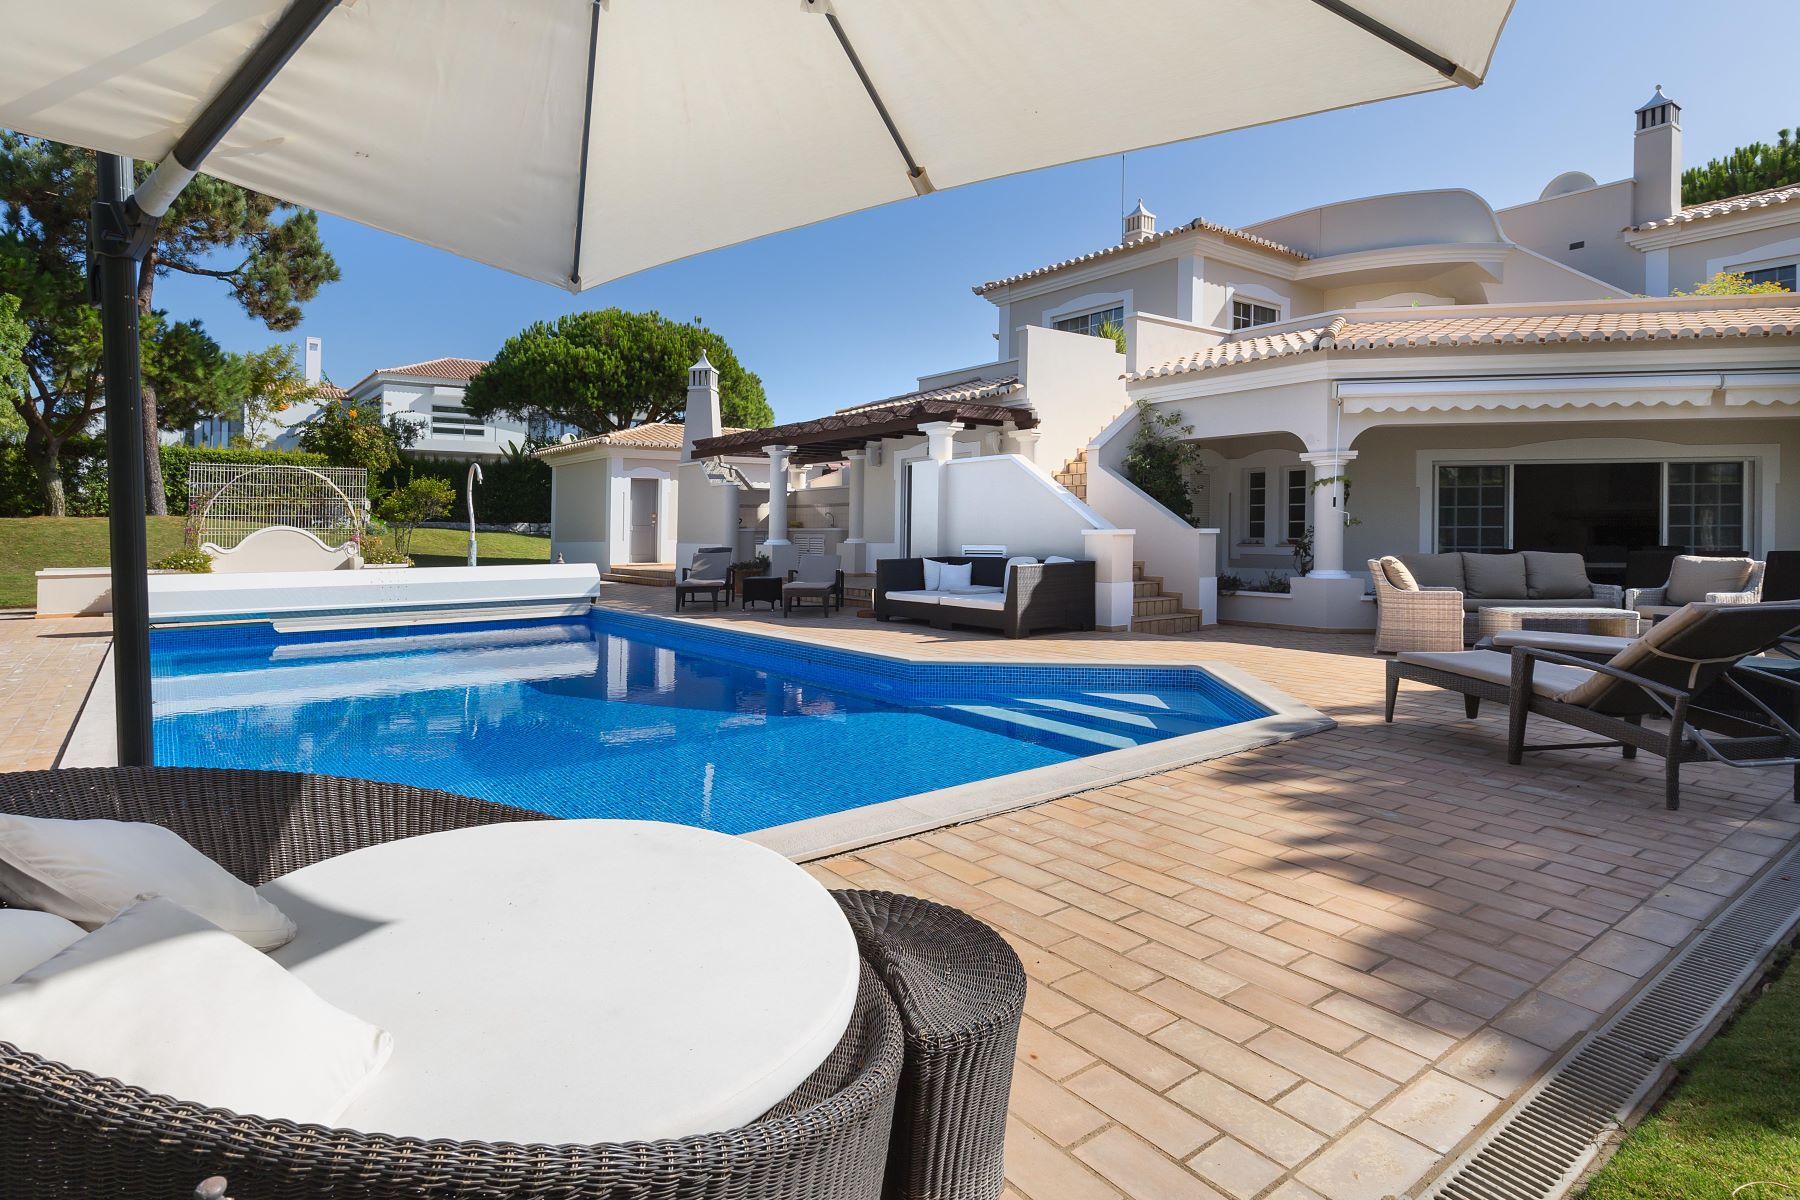 Single Family Home for Sale at House, 4 bedrooms, for Sale Loule, Algarve, Portugal